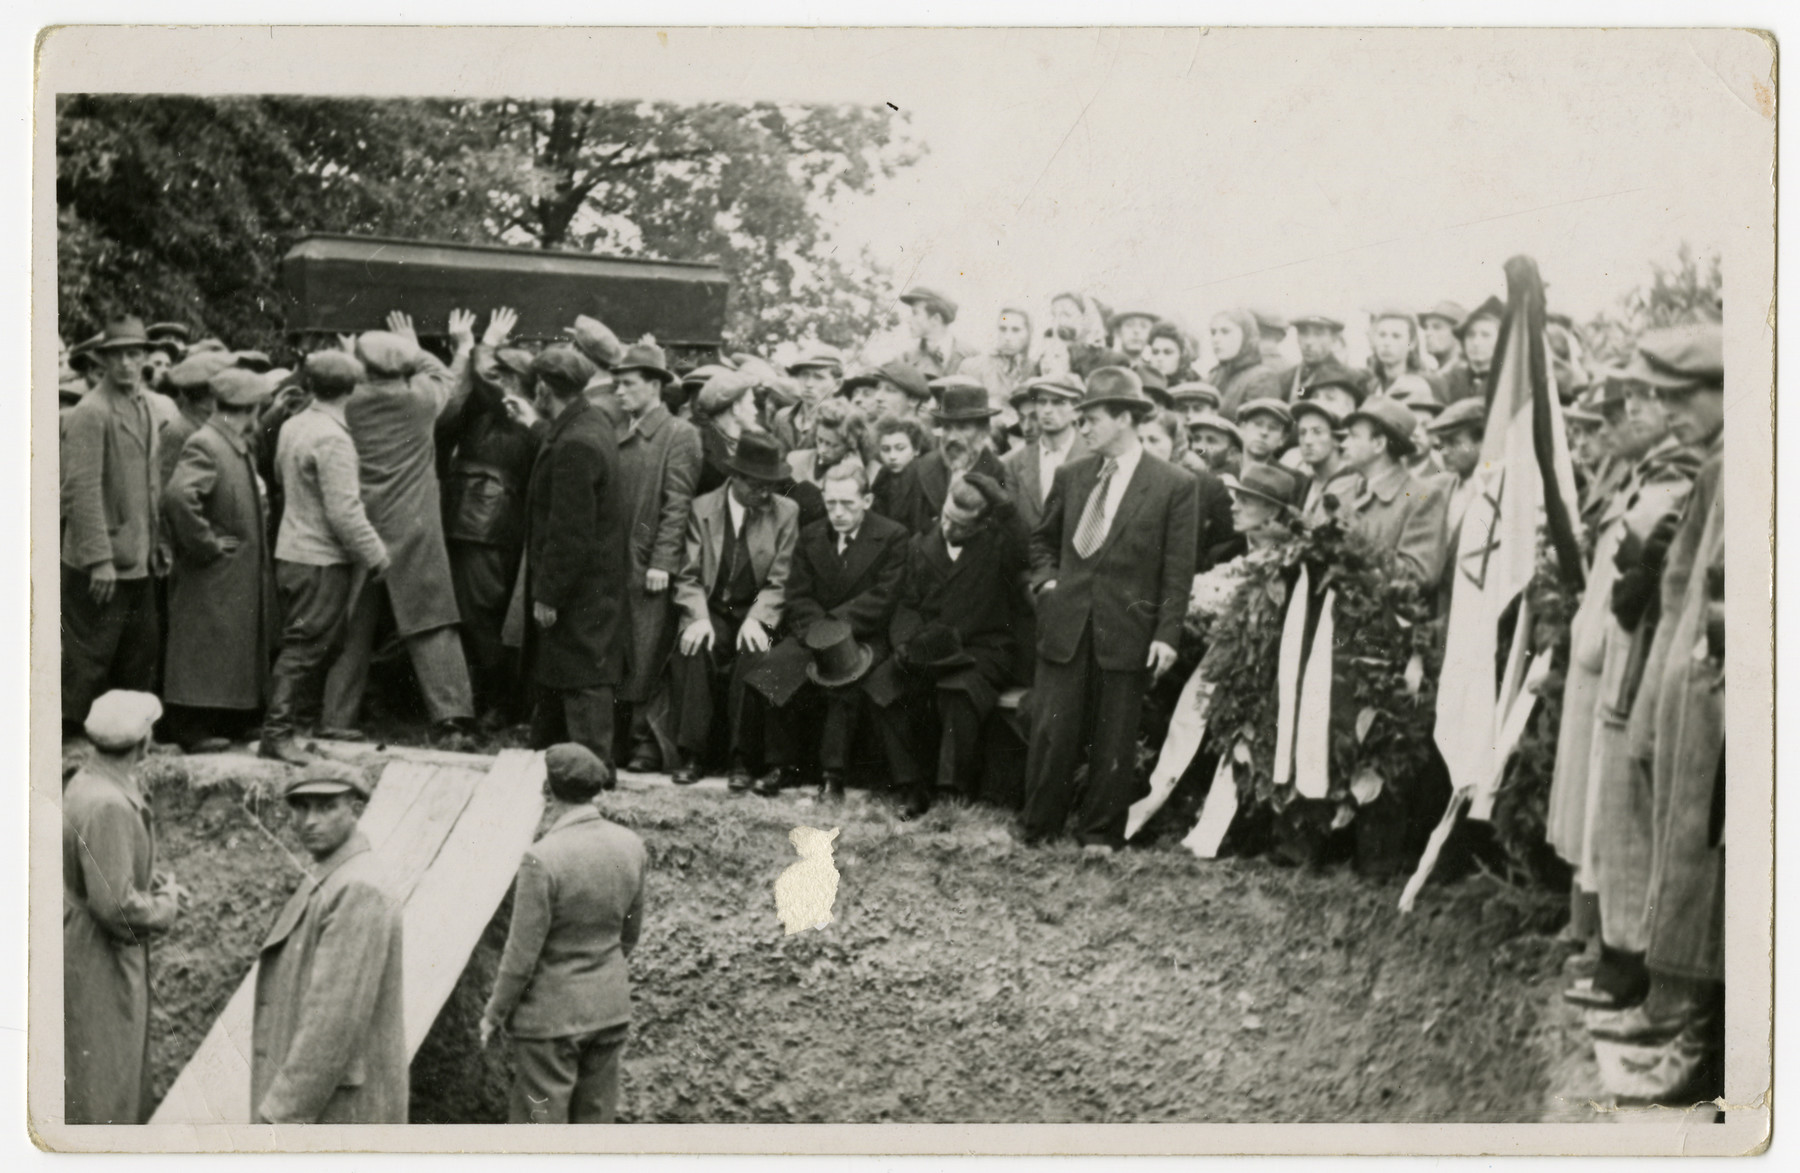 Displaced persons gather for a funeral.